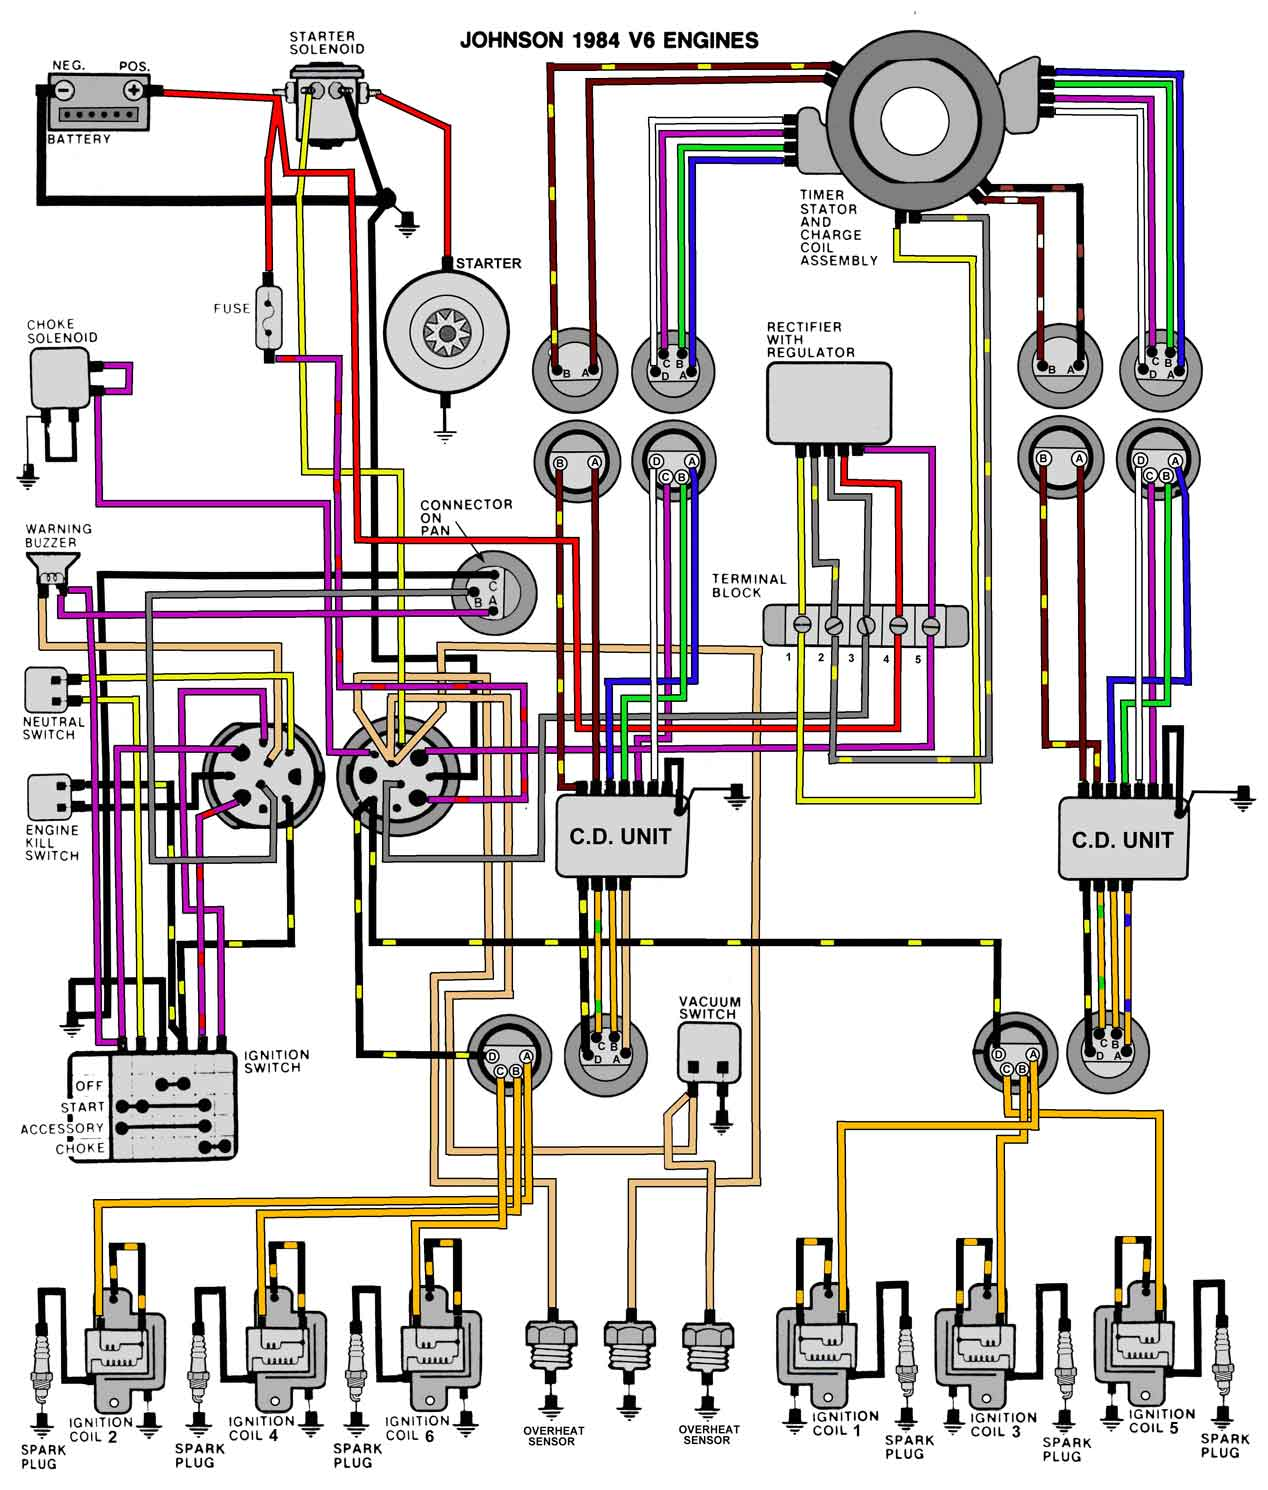 Marine Engine Starter Motor Wiring Diagram Reveolution Of Small Cdi Ignition Schematics Johnson 115 Hp Trim Schematic Rh Asparklingjourney Com Control Diagrams